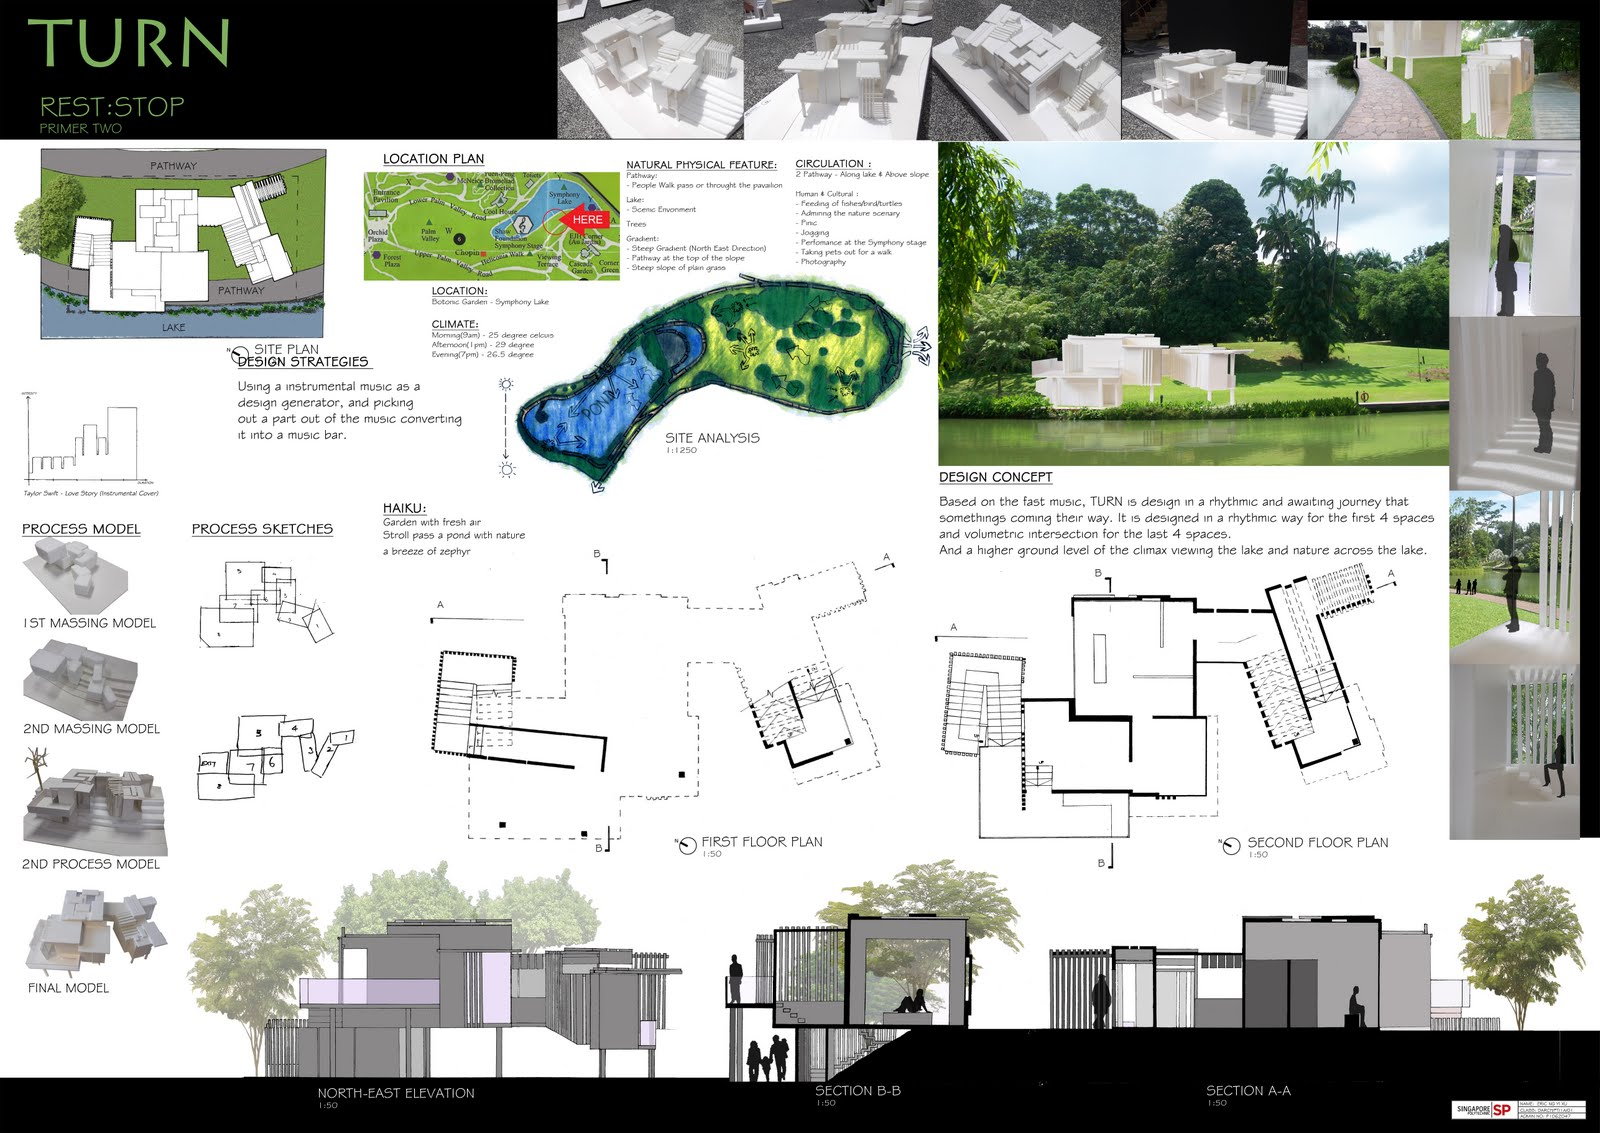 Utar archi batch i how to present your presentation board for Architectural design sample